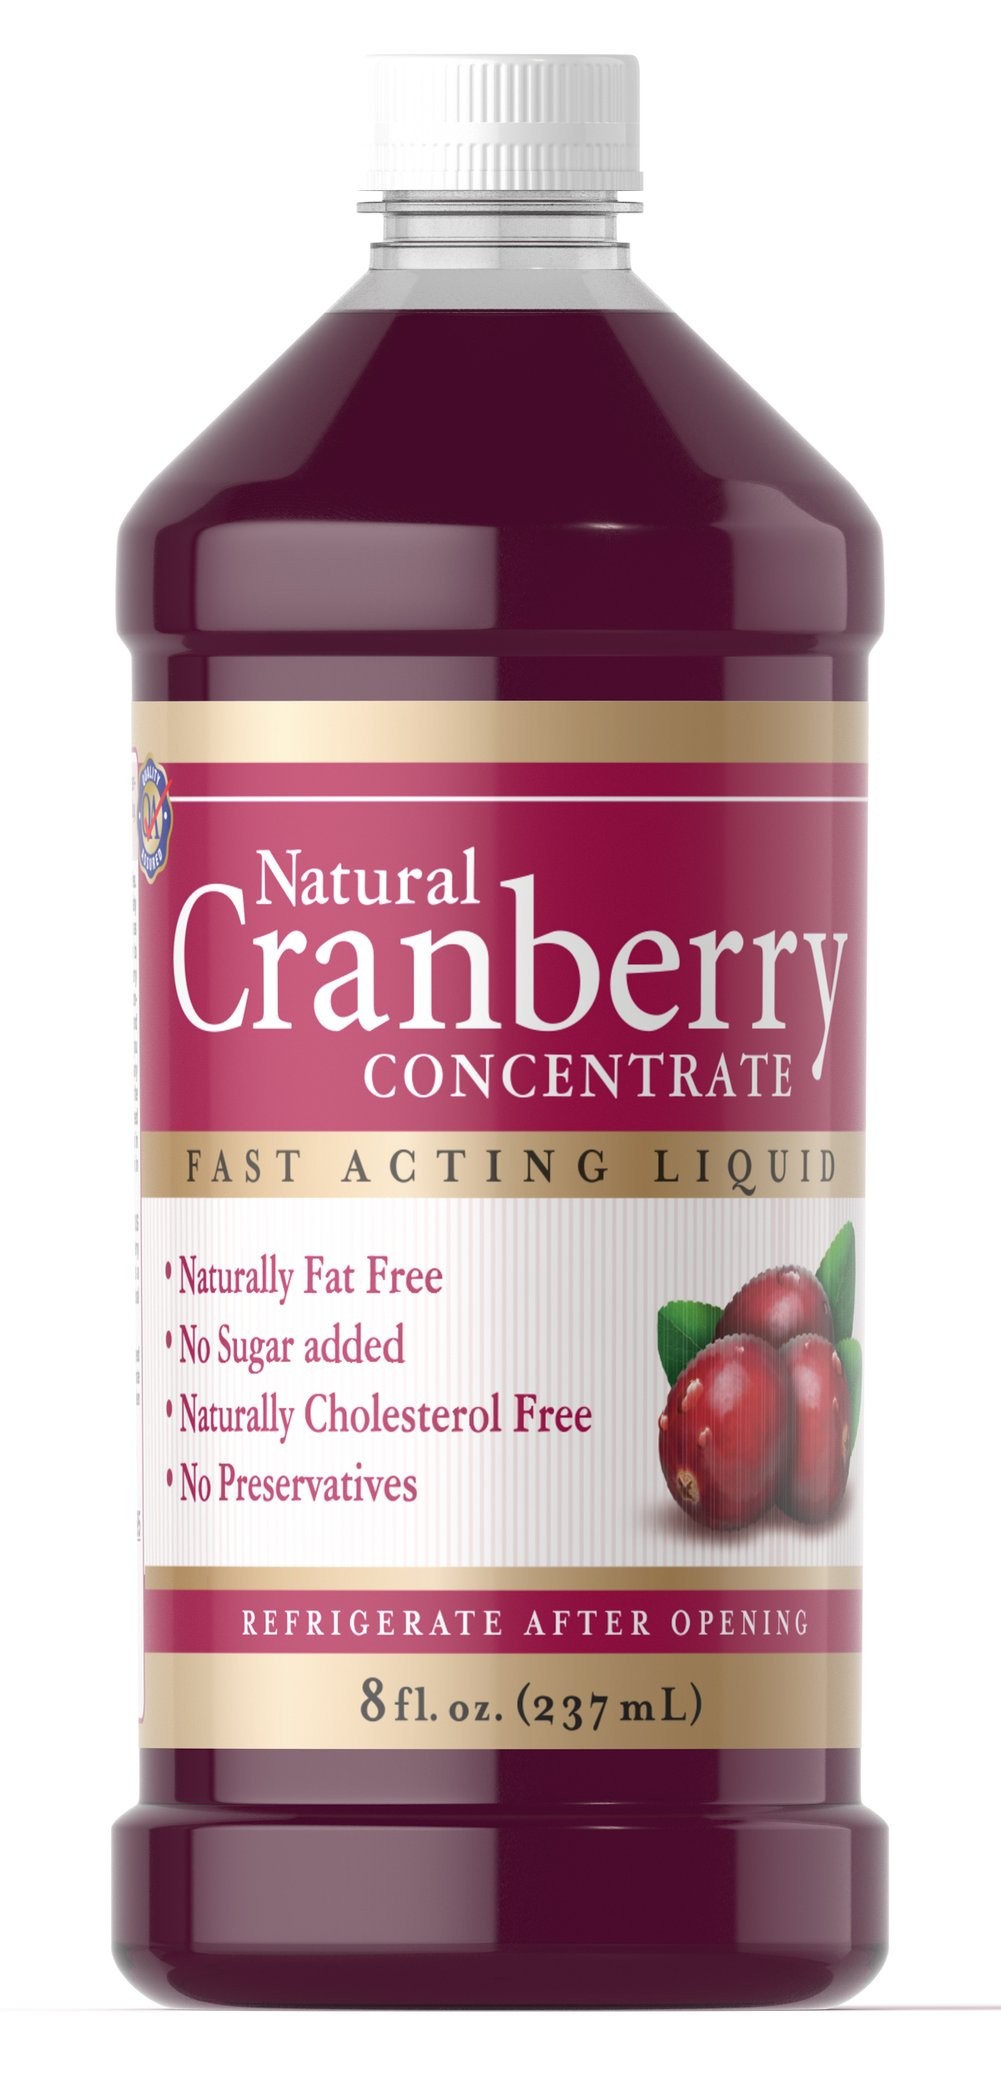 Natural Cranberry Concentrate Thumbnail Alternate Bottle View